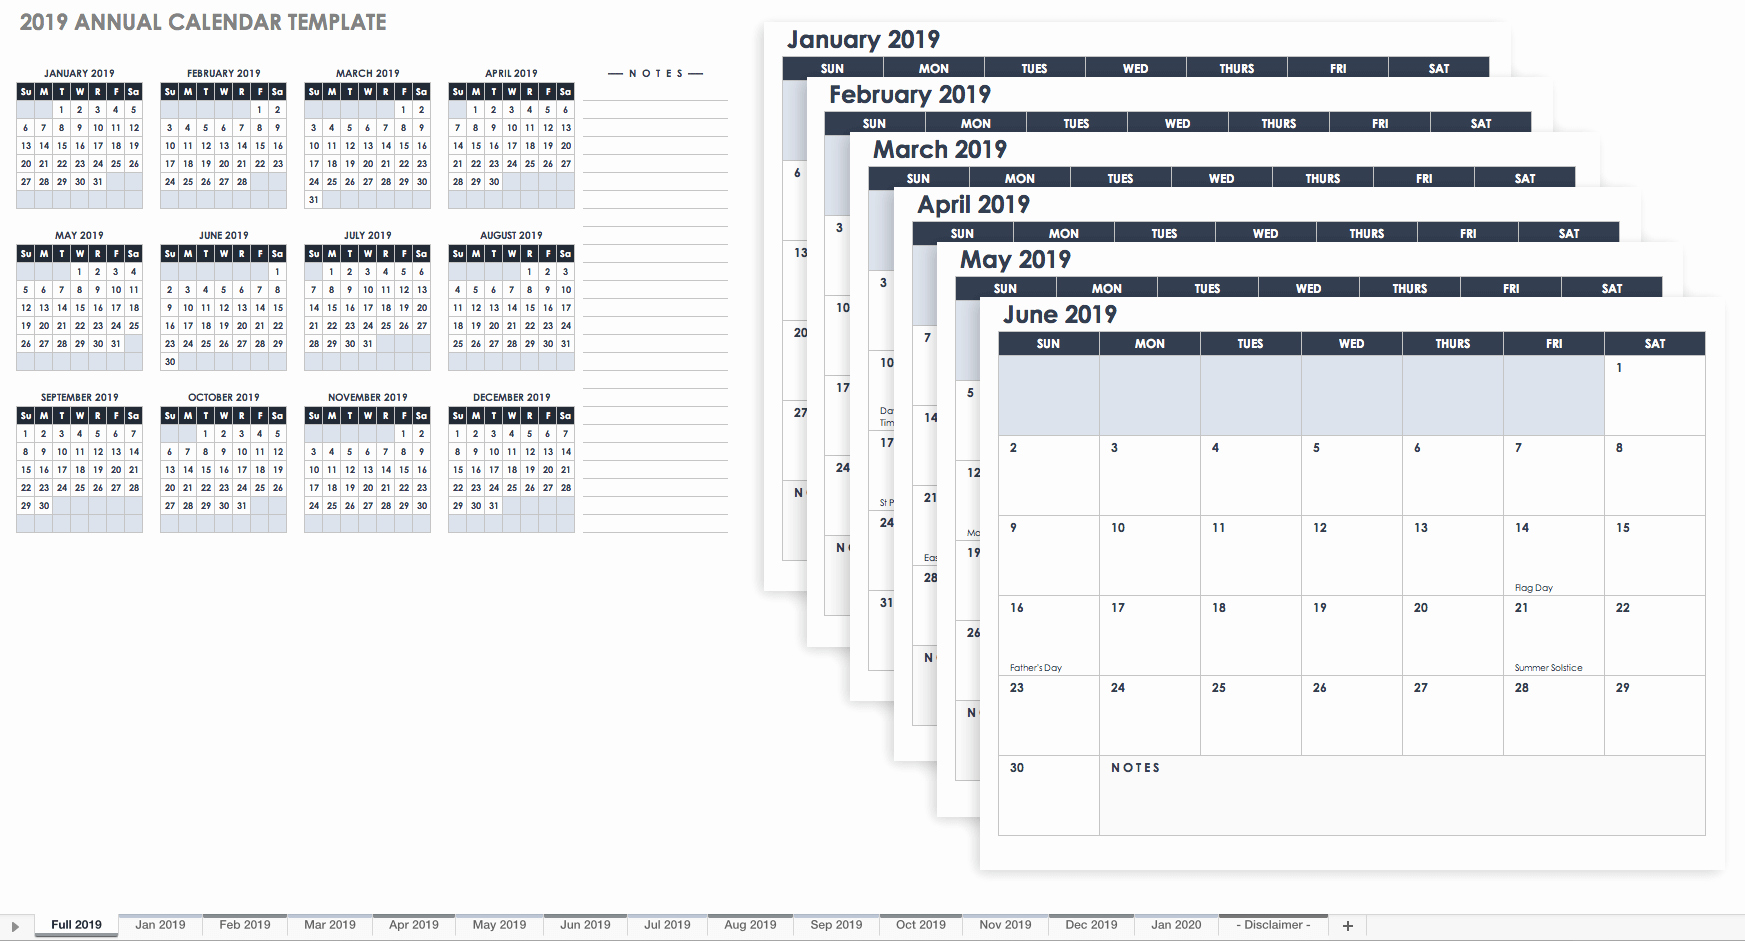 2019 Monthly Calendar Template Elegant 15 Free Monthly Calendar Templates